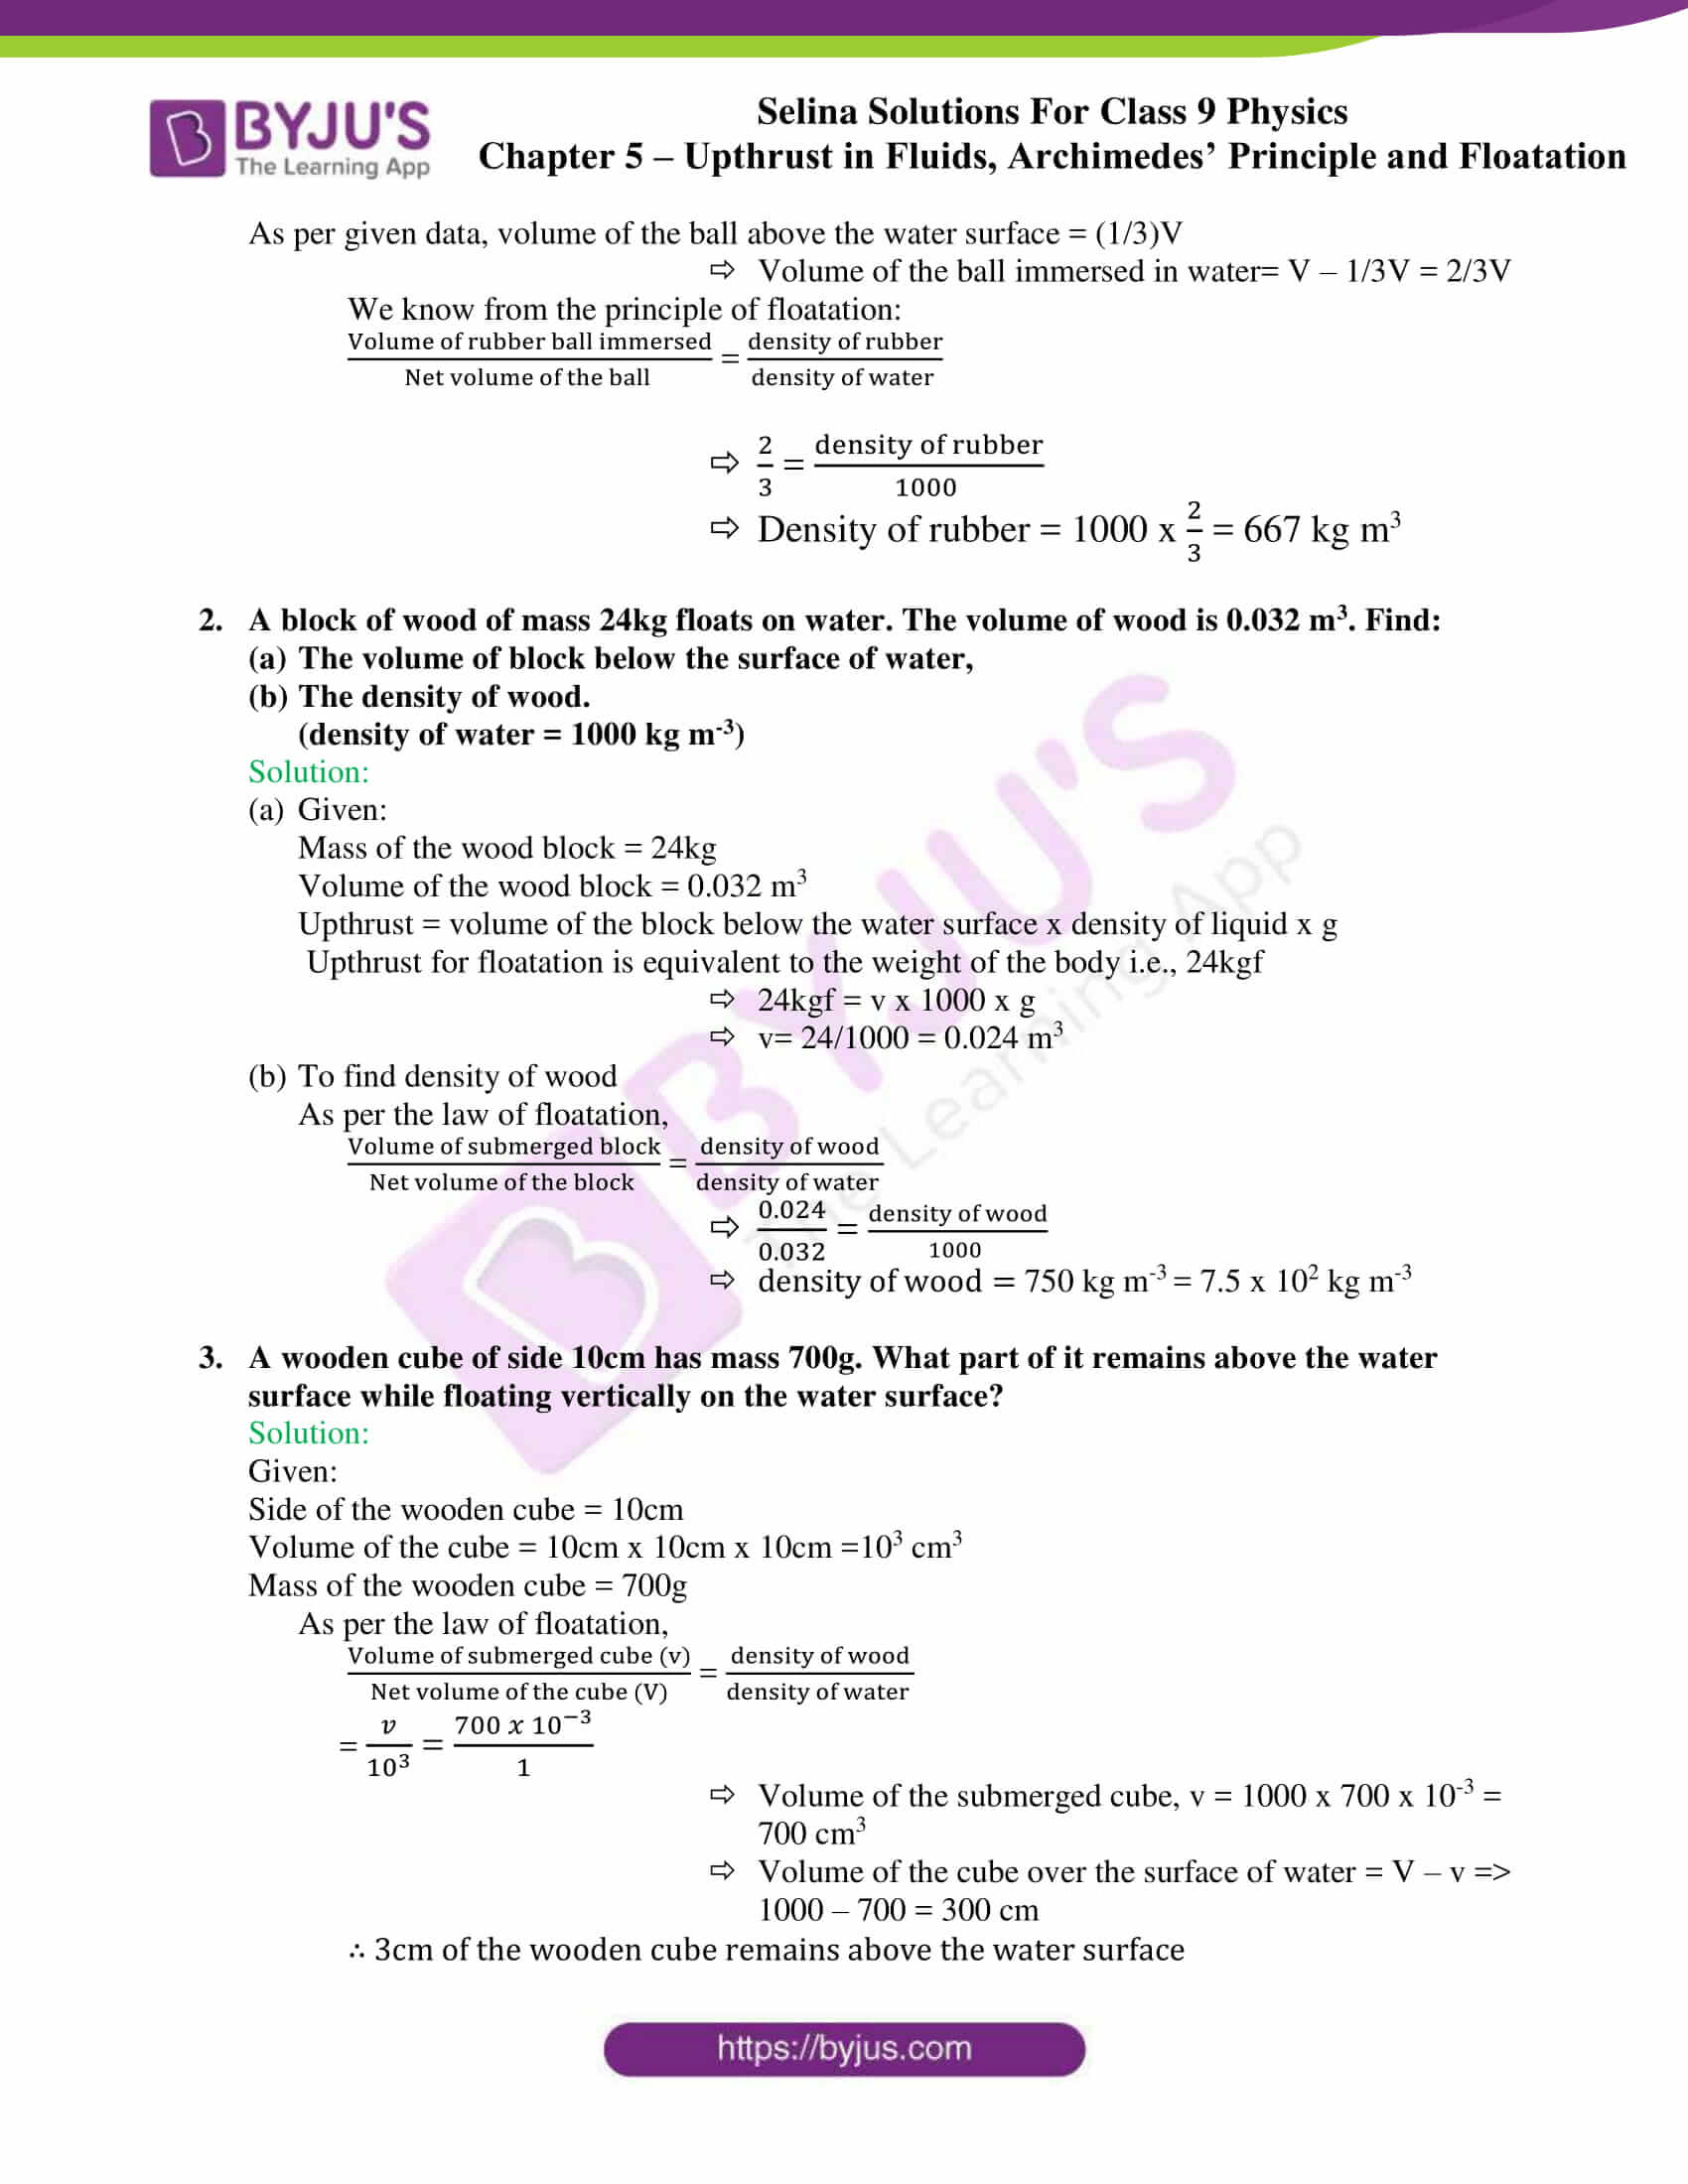 selina solutions class 9 physics chapter 5 part 30